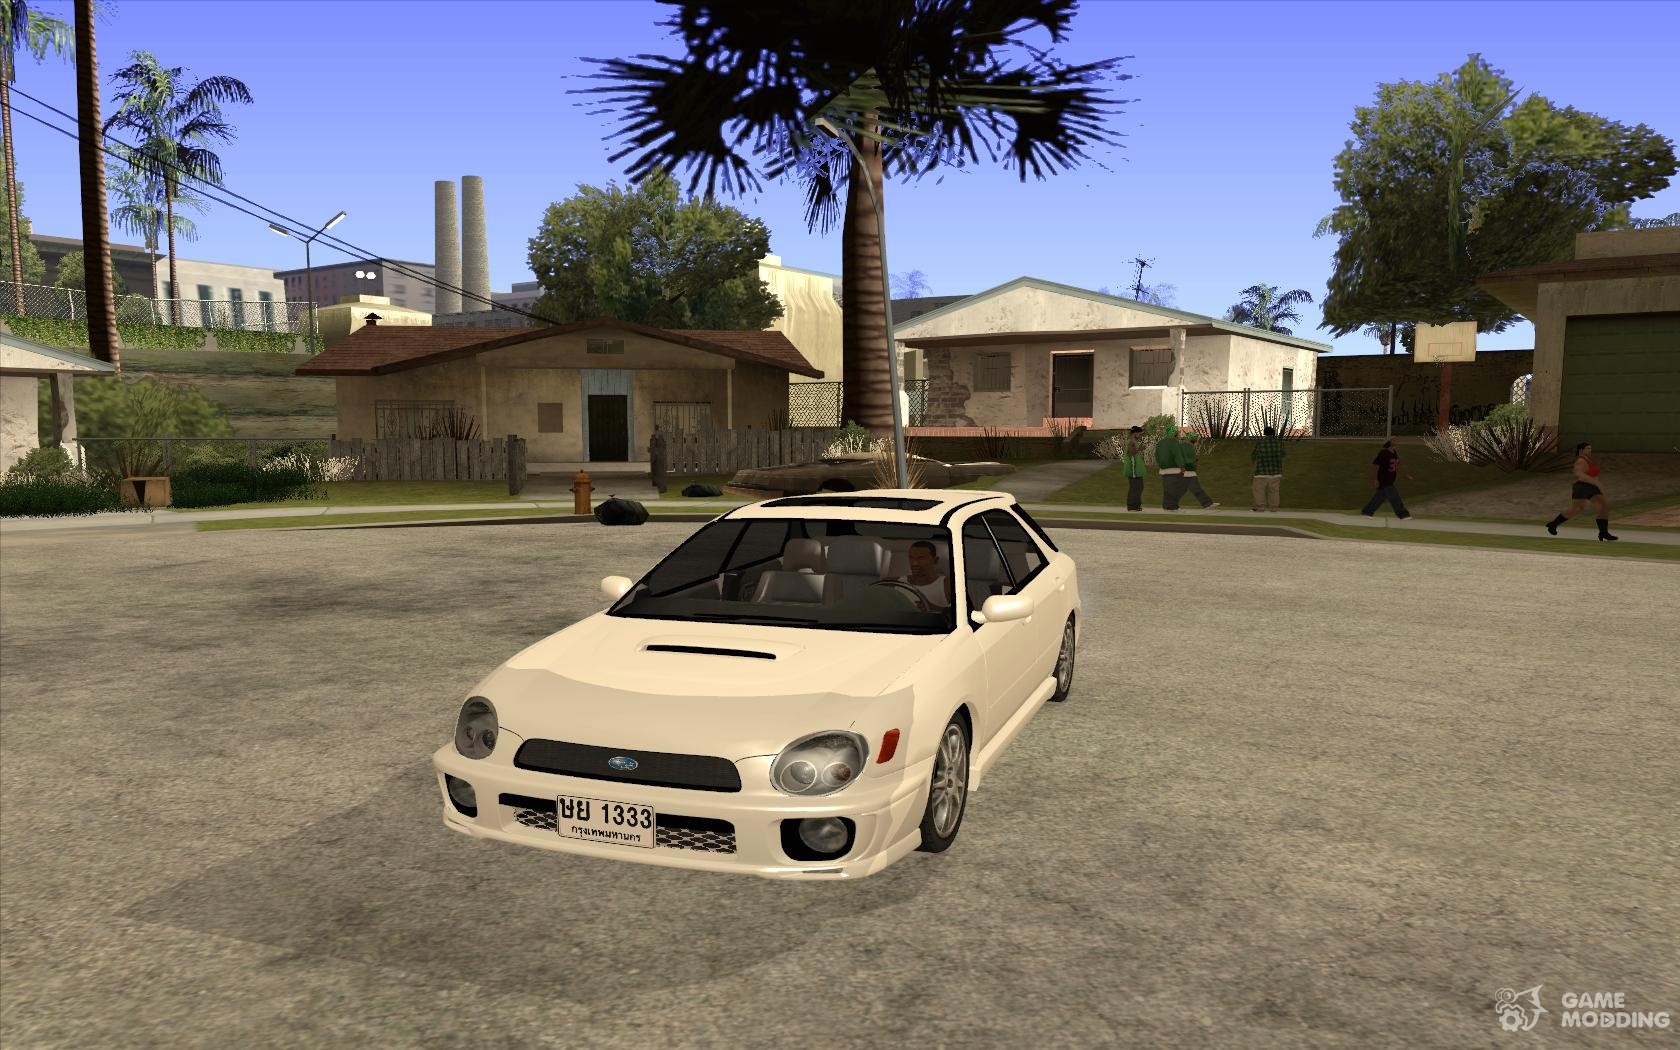 Impreza wrx wagon 2002 for gta san andreas subaru impreza wrx wagon 2002 for gta san andreas vanachro Images